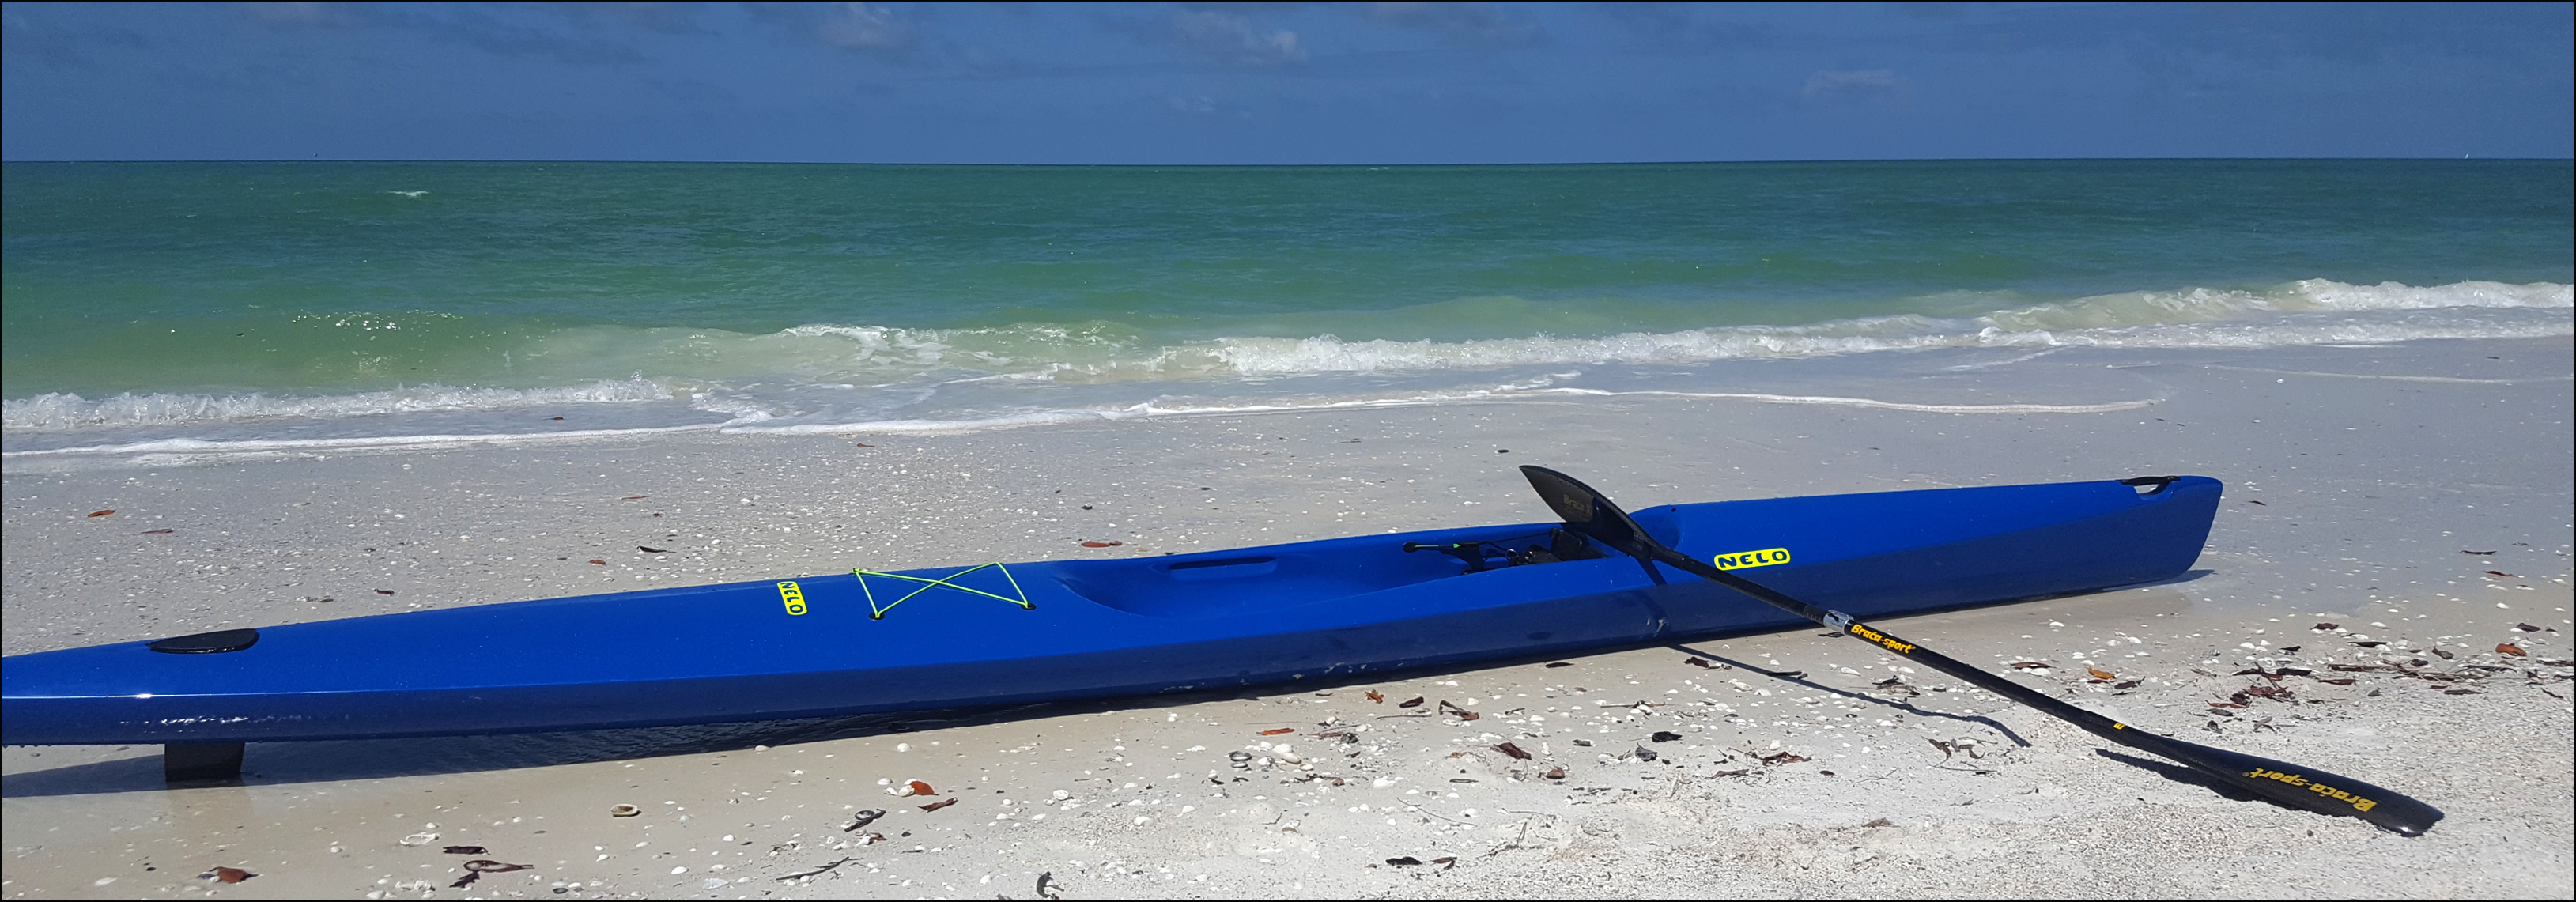 Surf Ski Lessons Naples - Schedule Today! - Paddlesports of